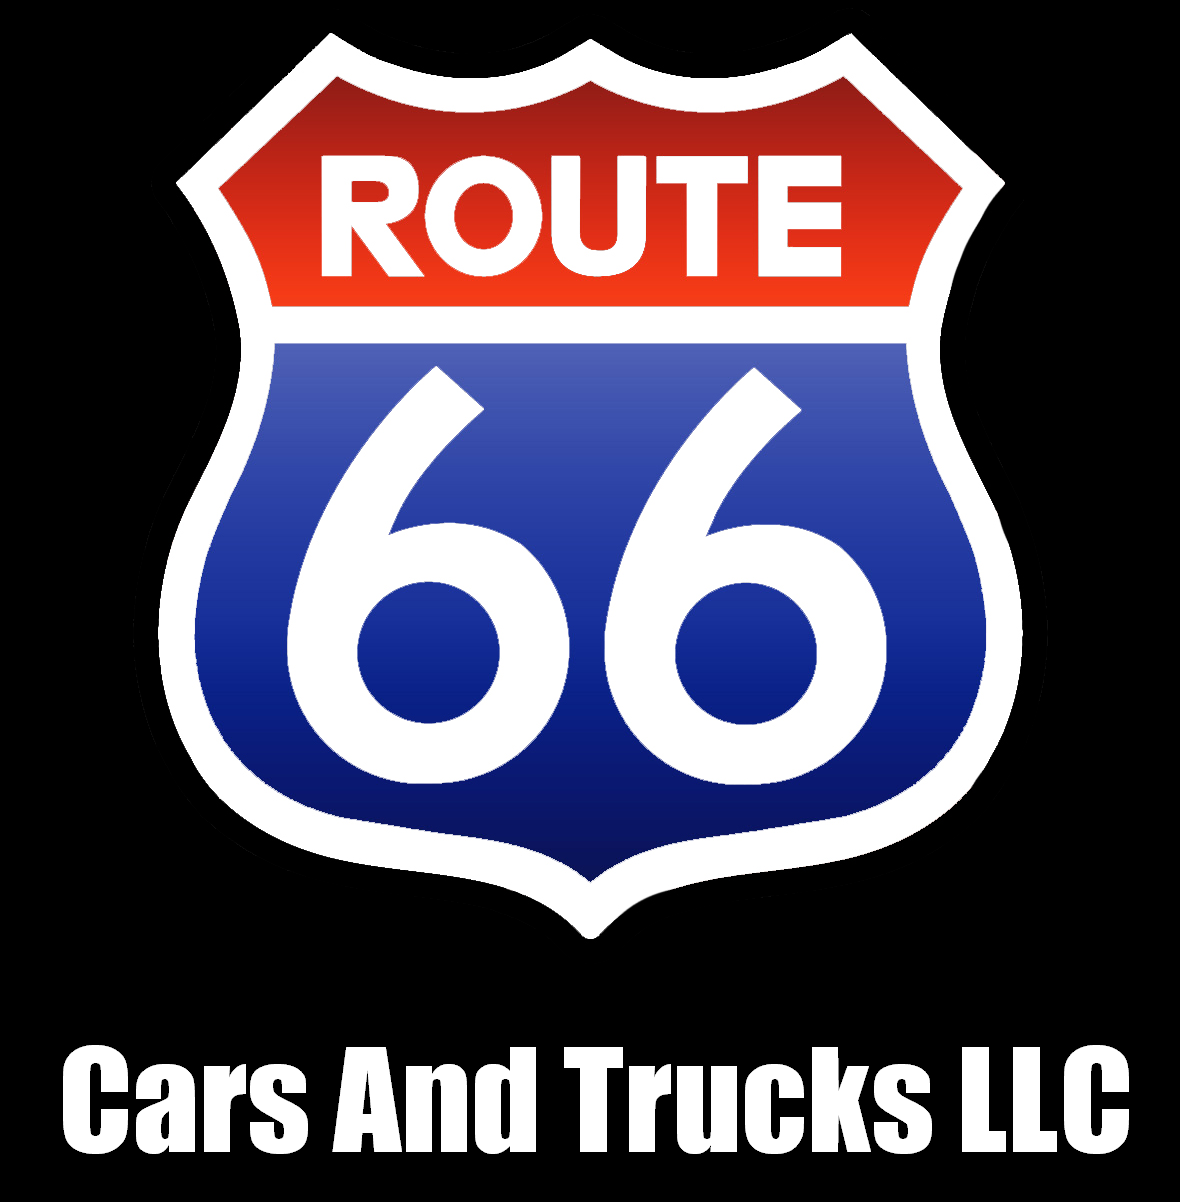 ROUTE 66 CARS AND TRUCKS LLC